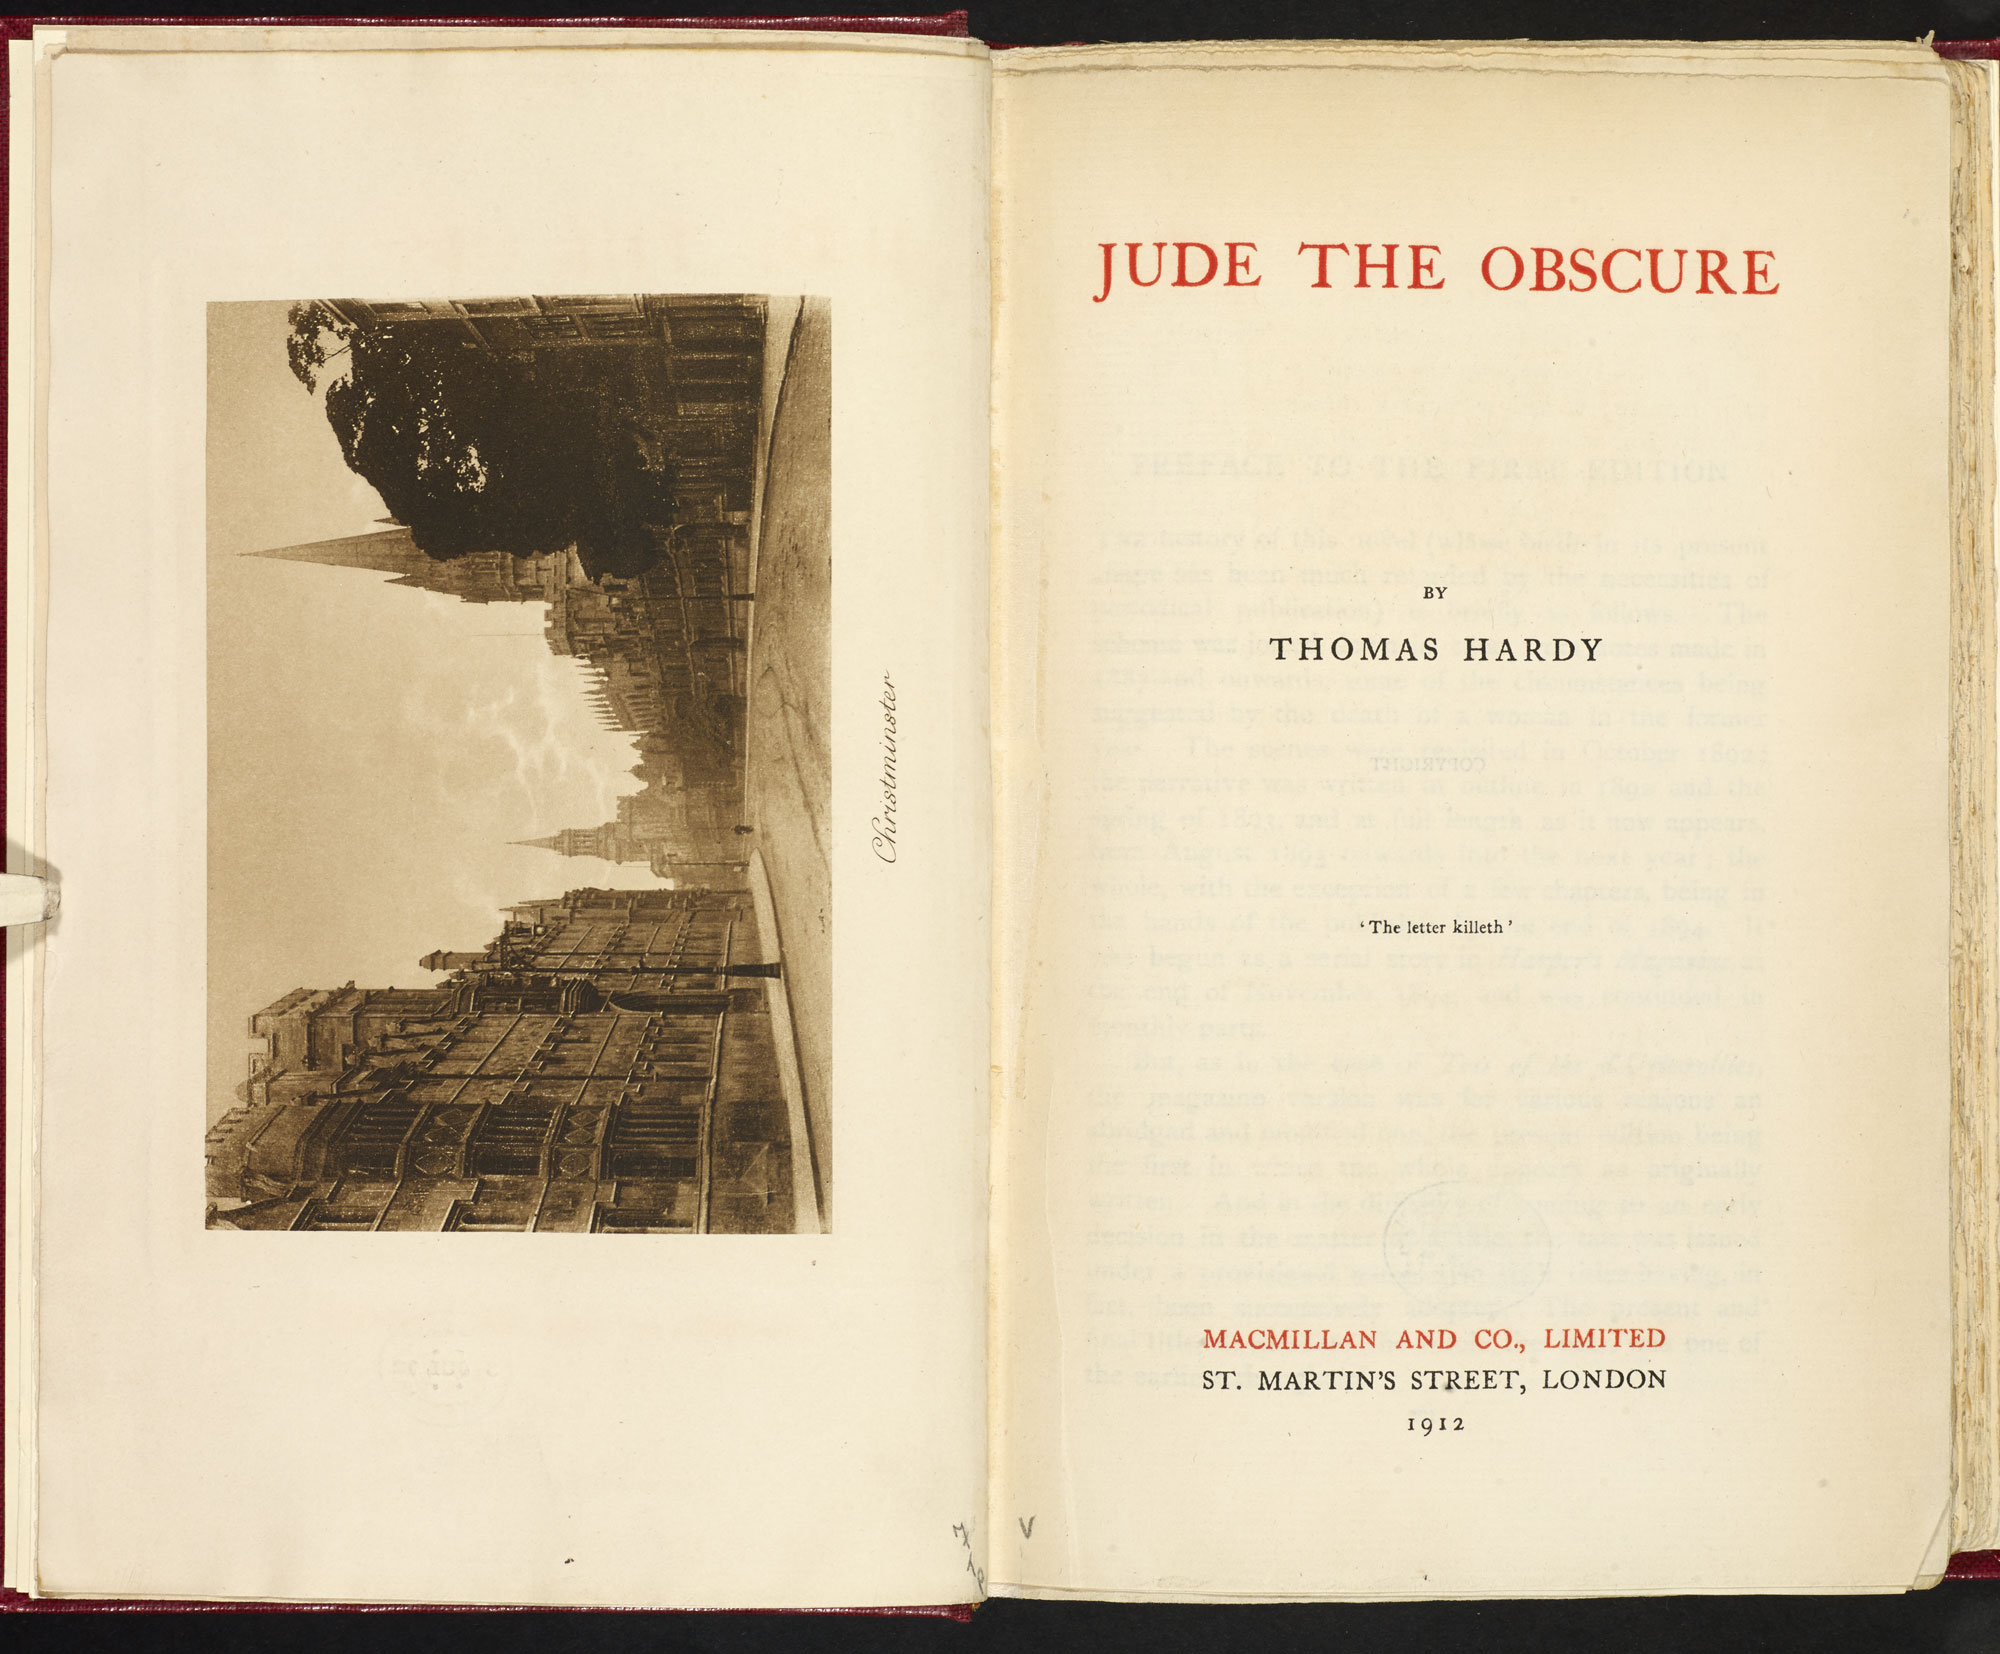 Jude the Obscure by Thomas Hardy [page: frontispiece and title page]